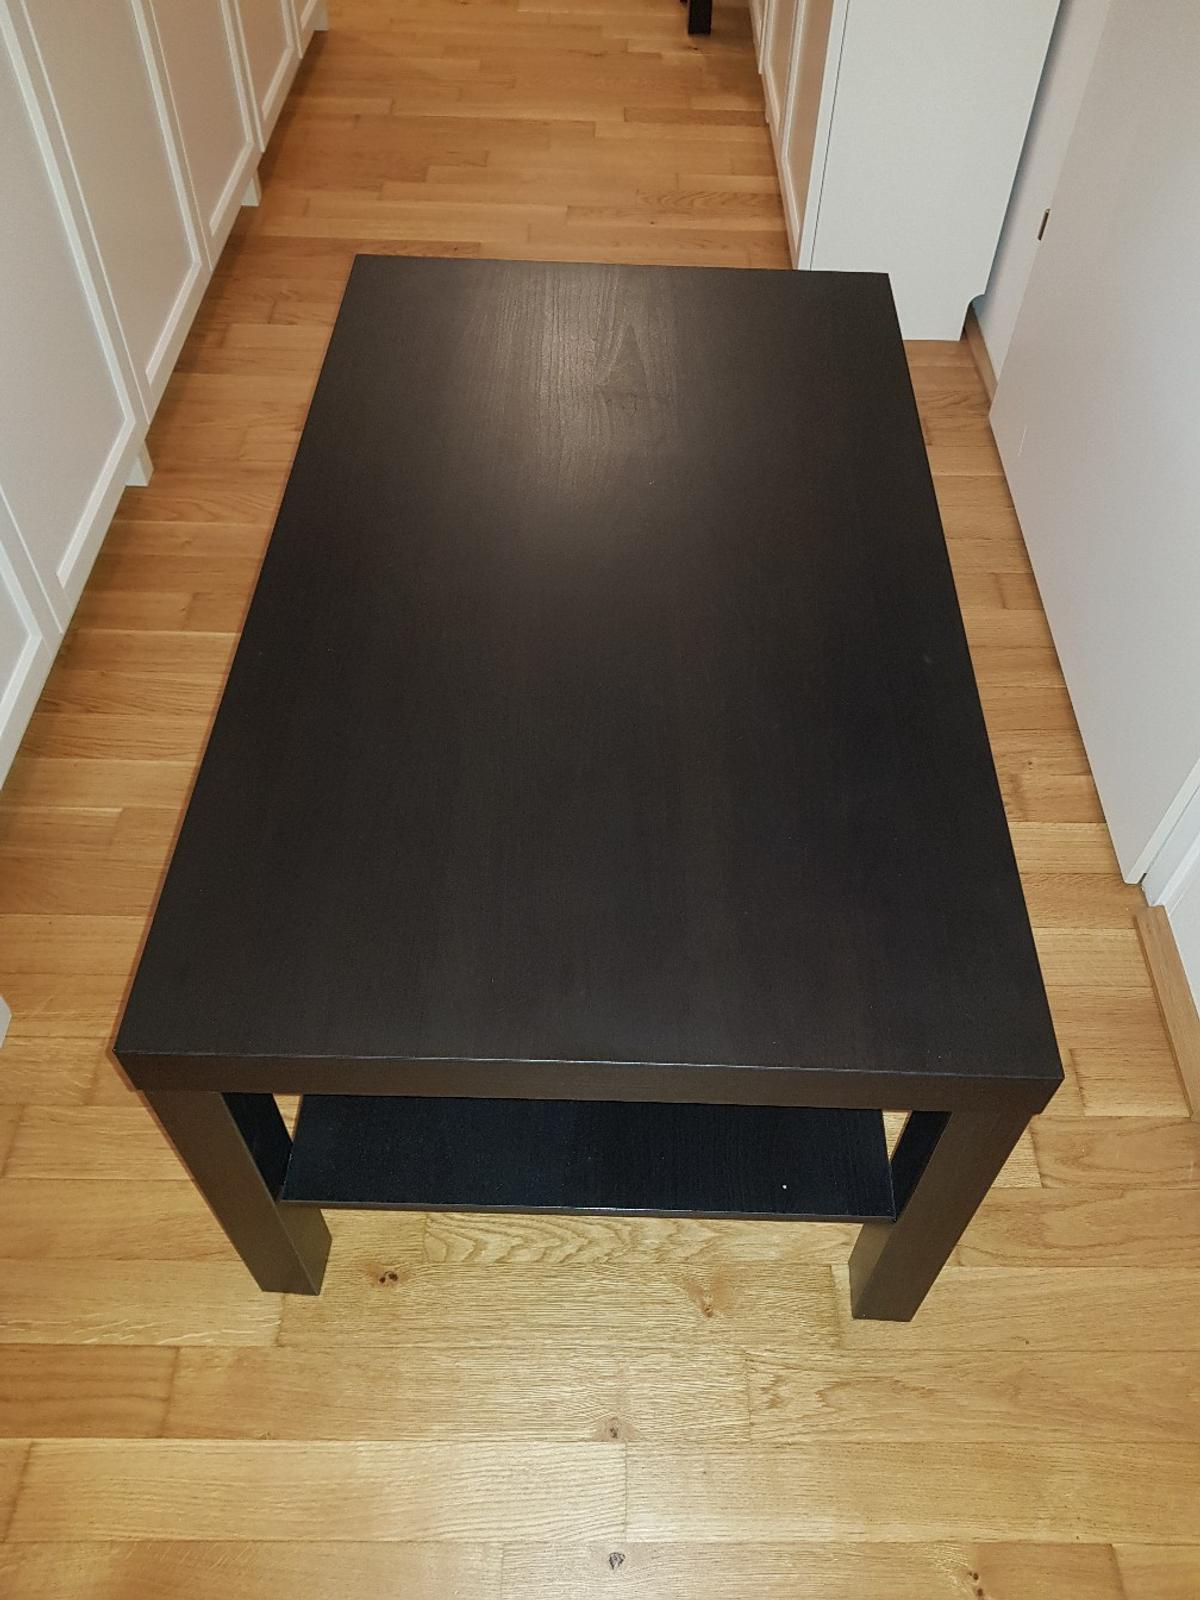 Ikea Lack Couchtisch Schwarzbraun In 4020 Linz For 10 00 For Sale Shpock